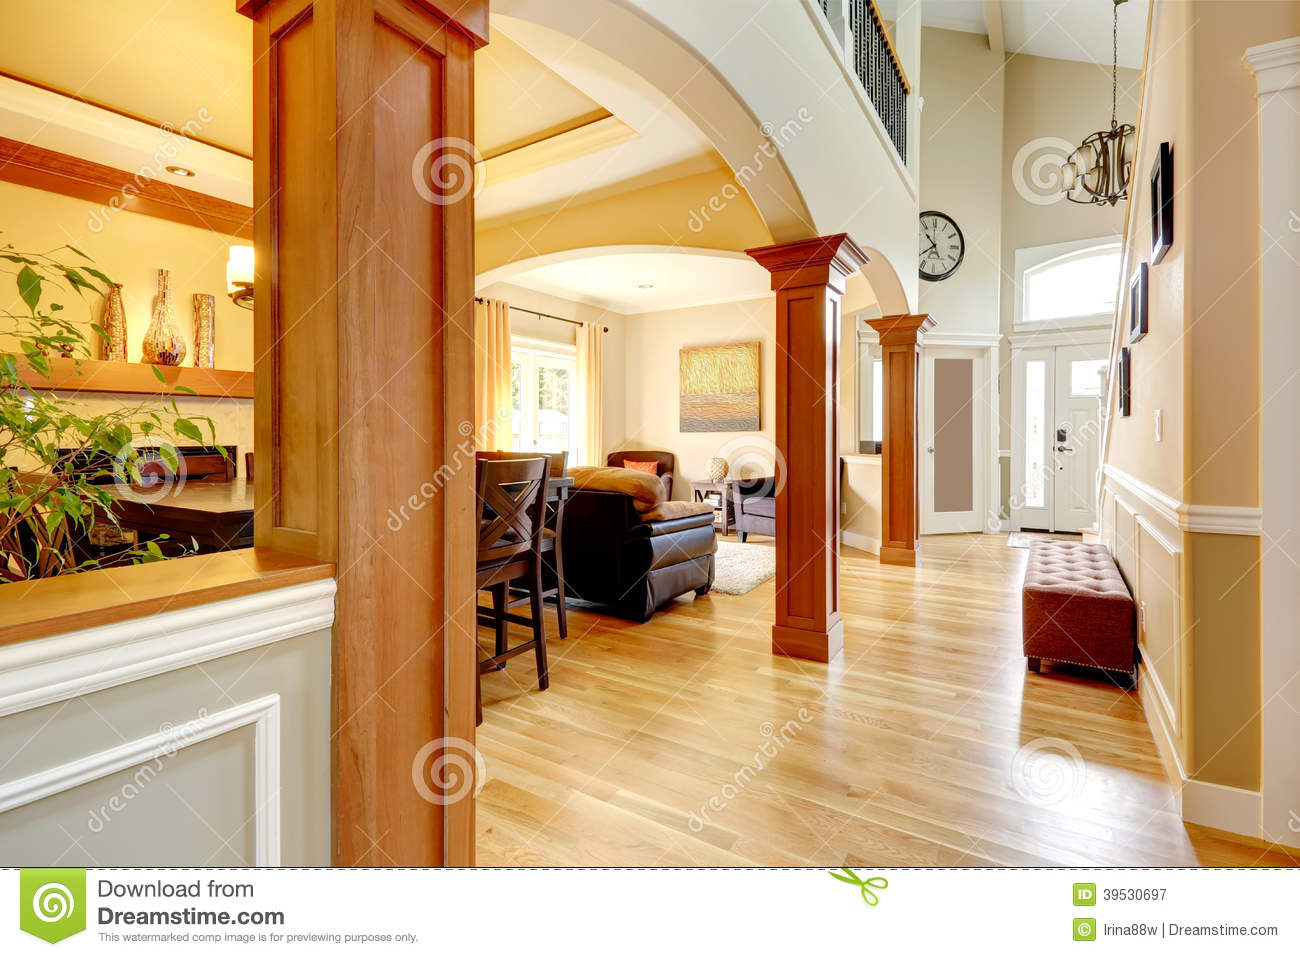 Luxury home interior royalty free stock photography